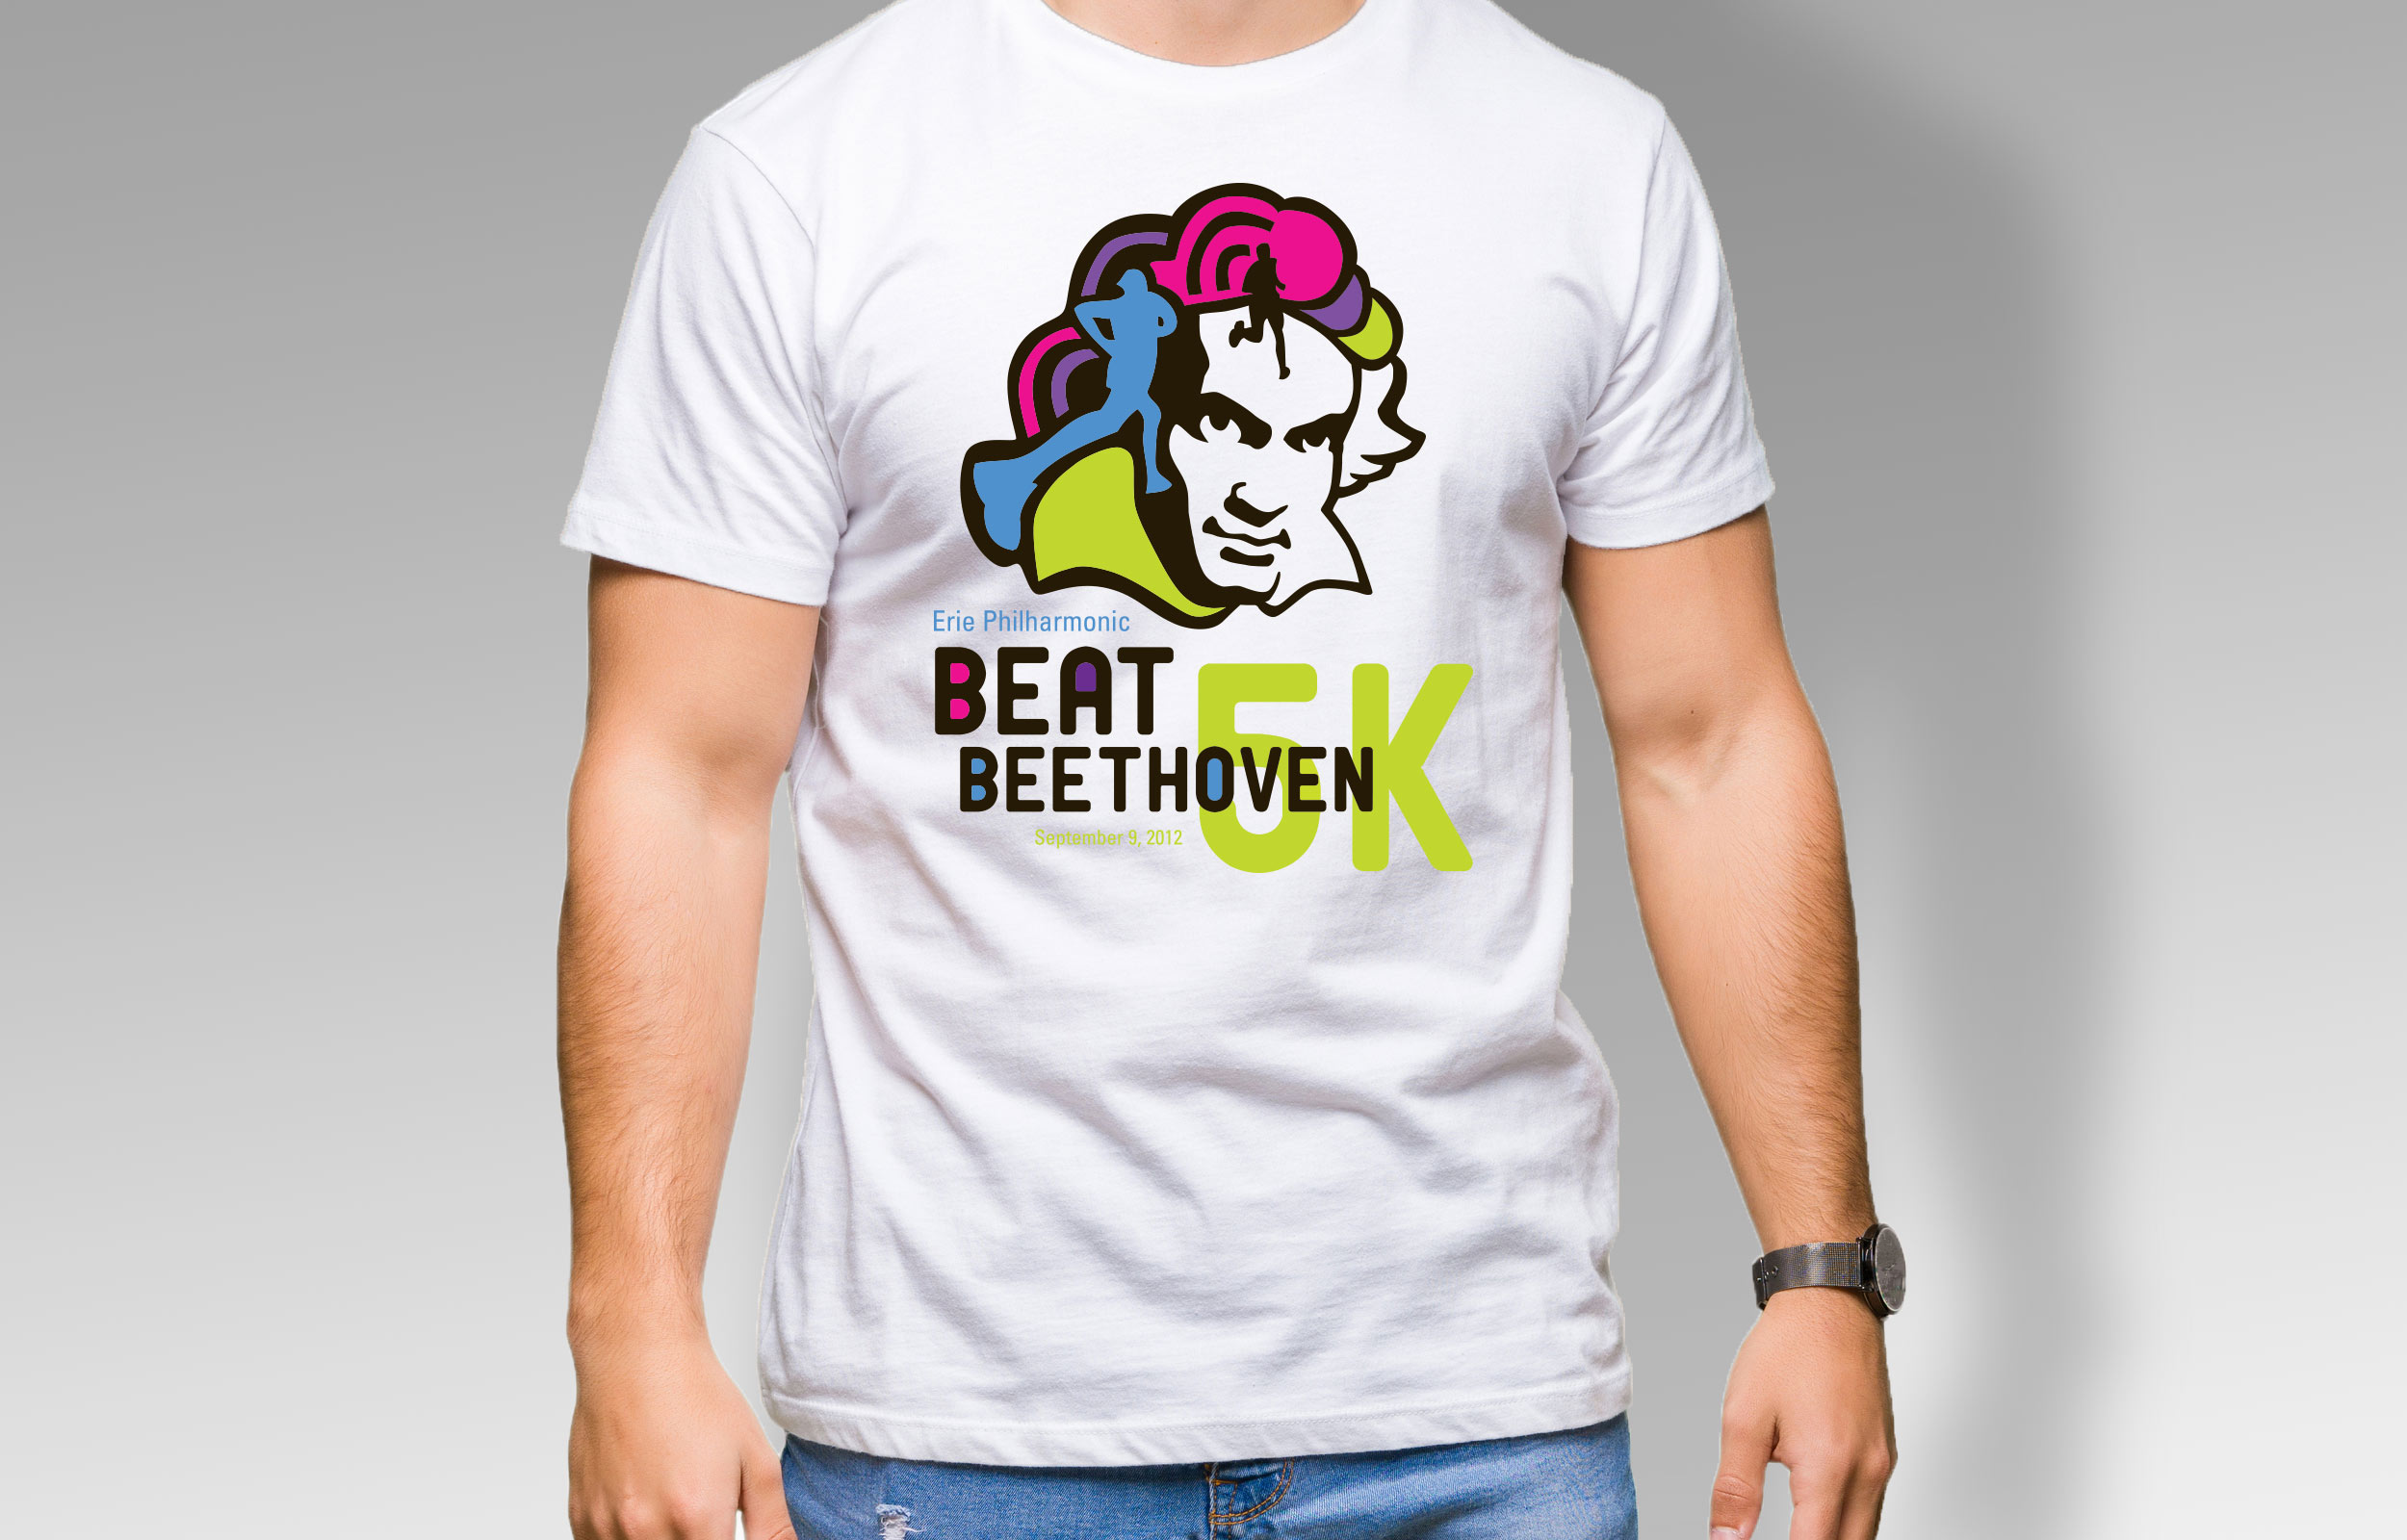 https://papaadvertising.com/wp-content/uploads/2015/04/Phil_beethoven_run.jpg